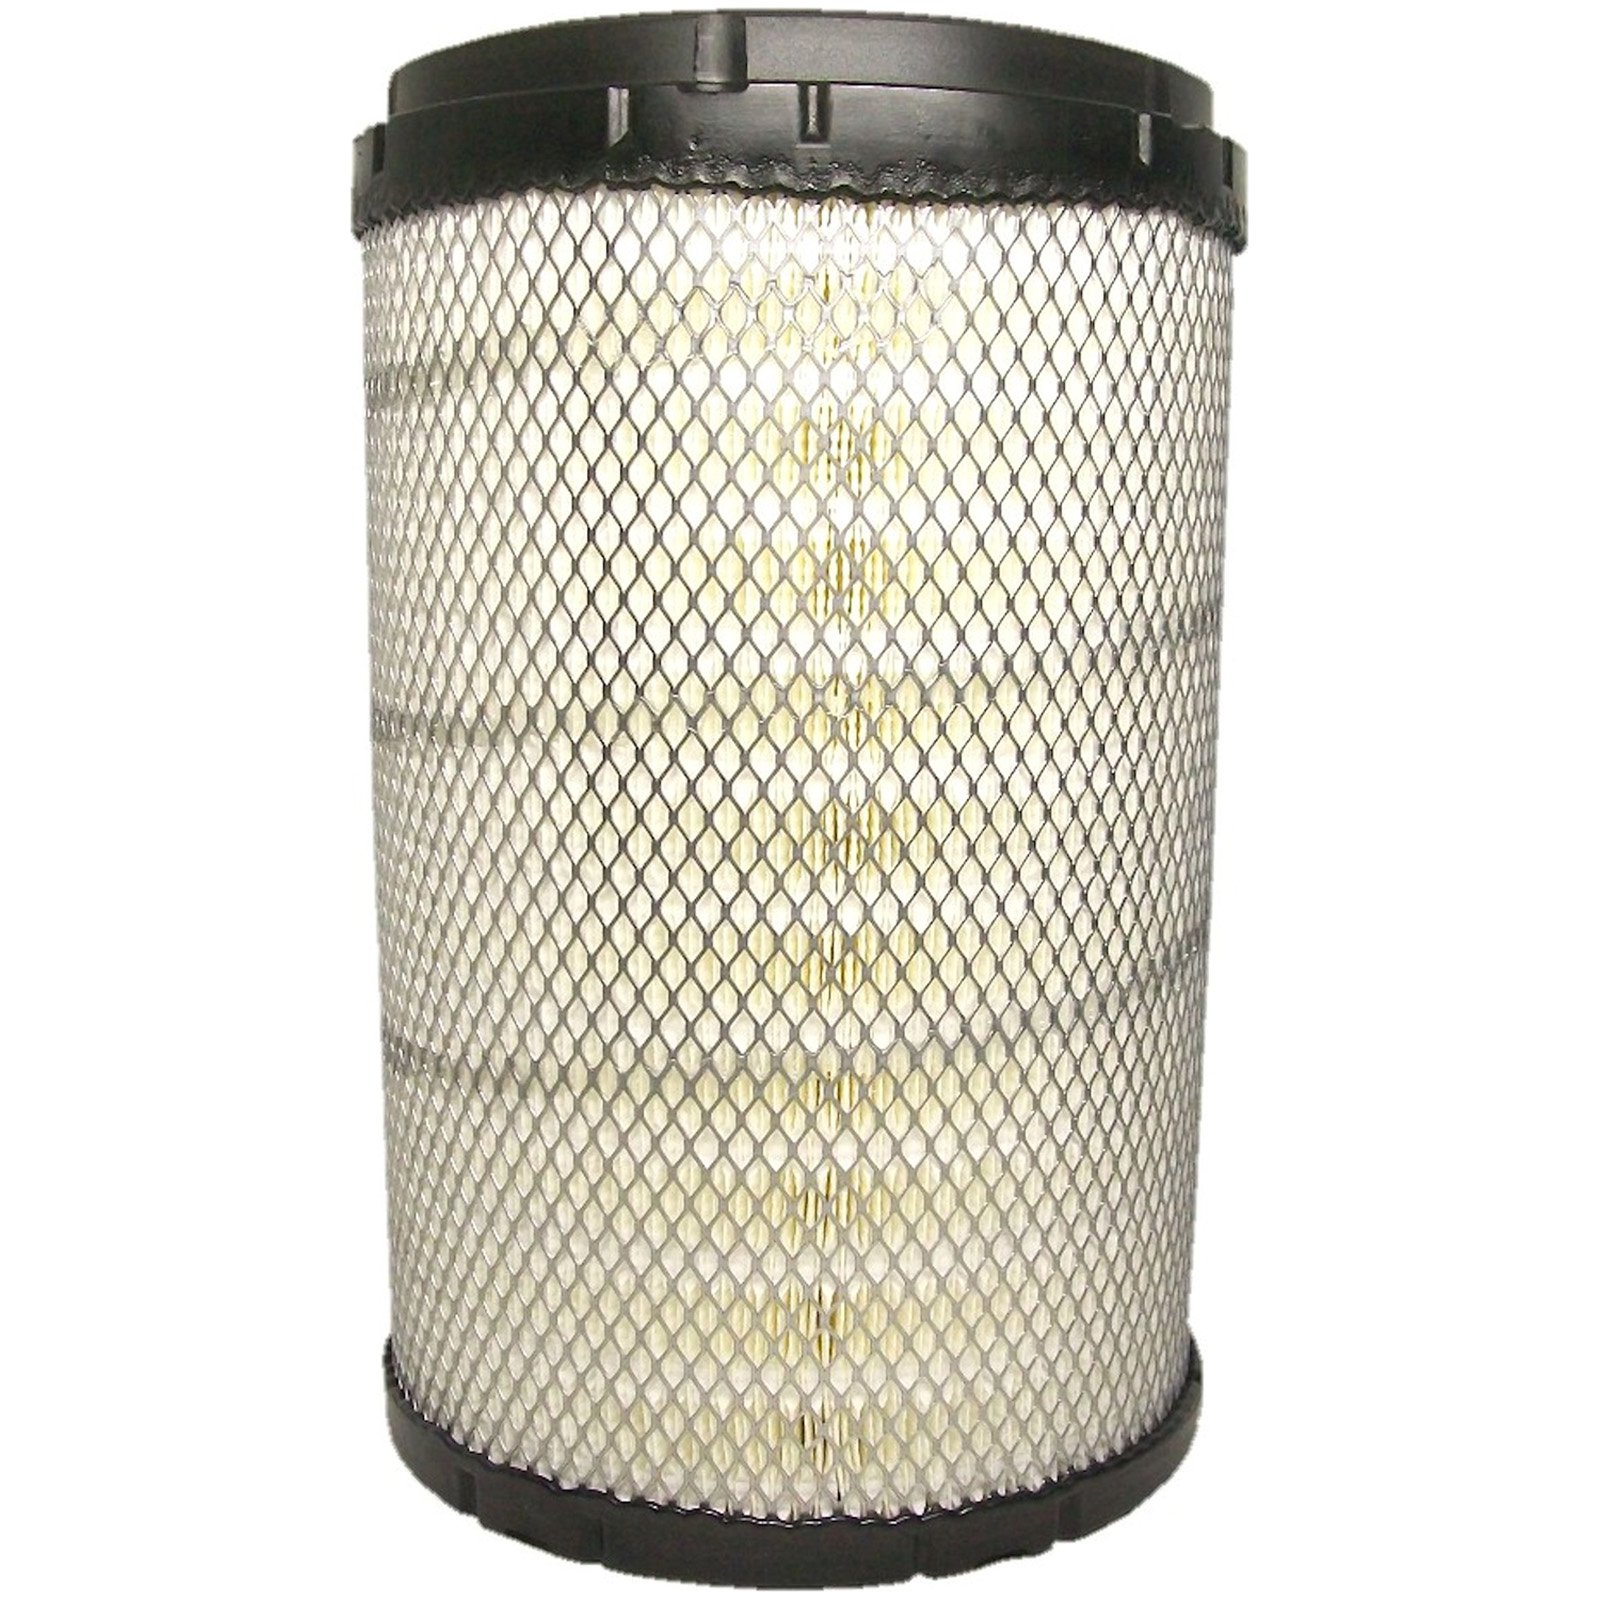 Luber-finer LAF1848 Heavy Duty Air Filter